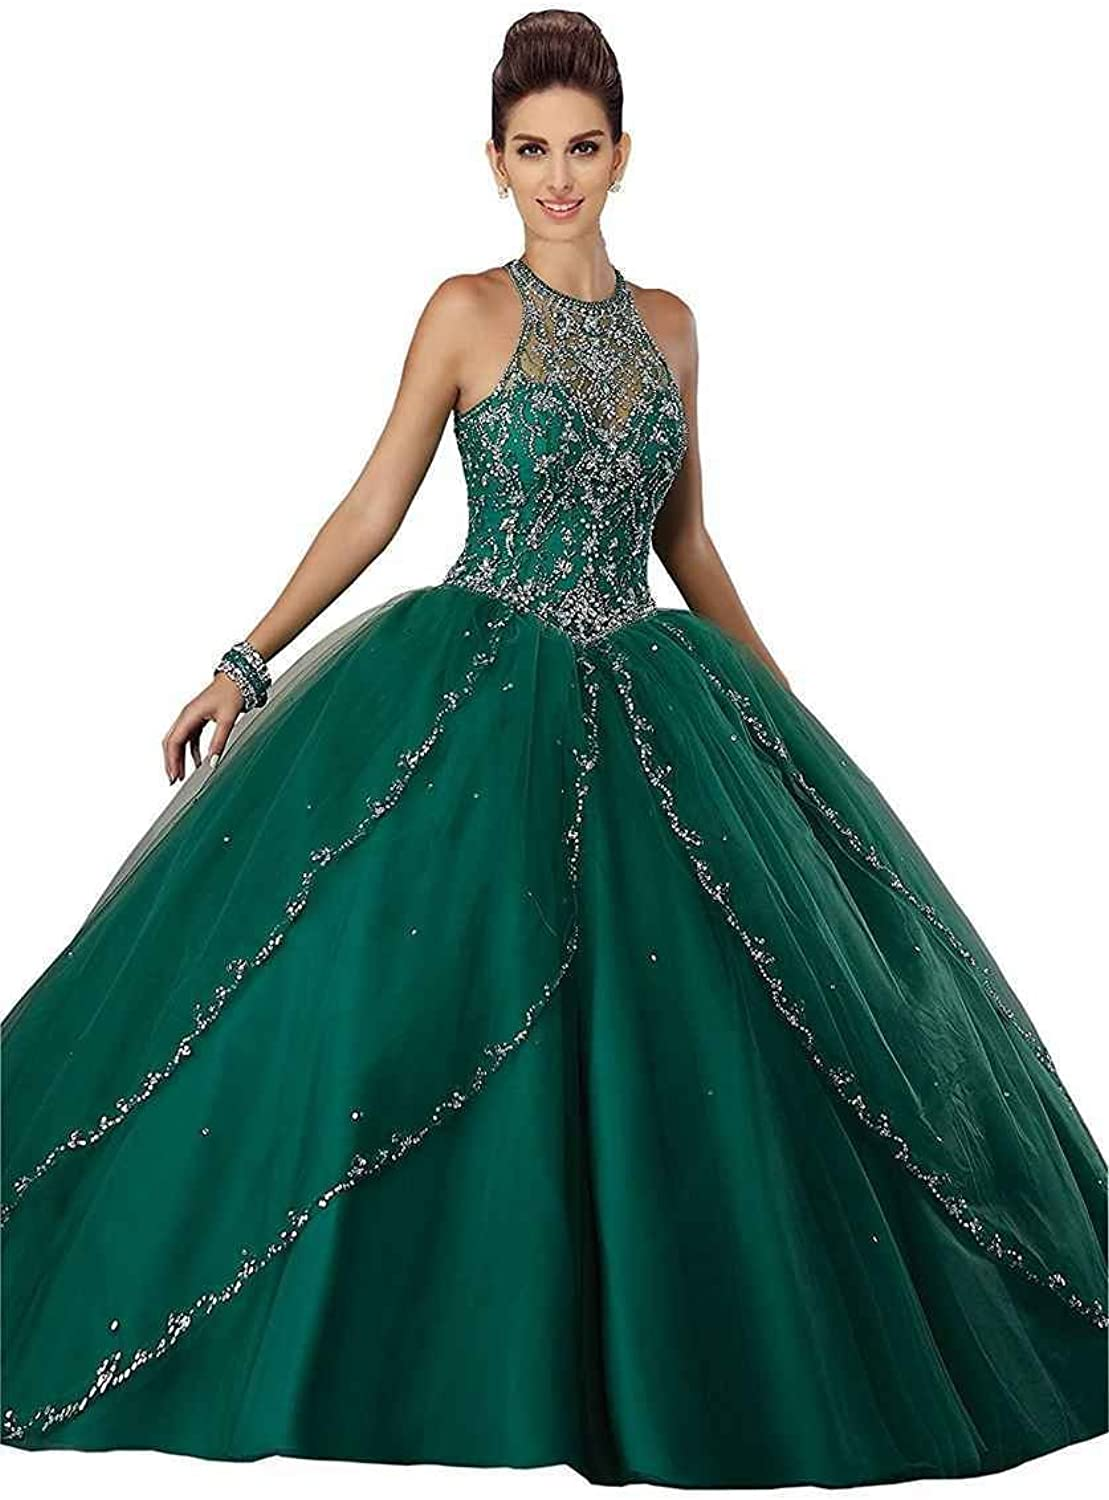 LastBridal Women Tulle Beaded Crystal Lace Up Ball Gown Sweet 16 Quinceanera Dresses Long LB0177